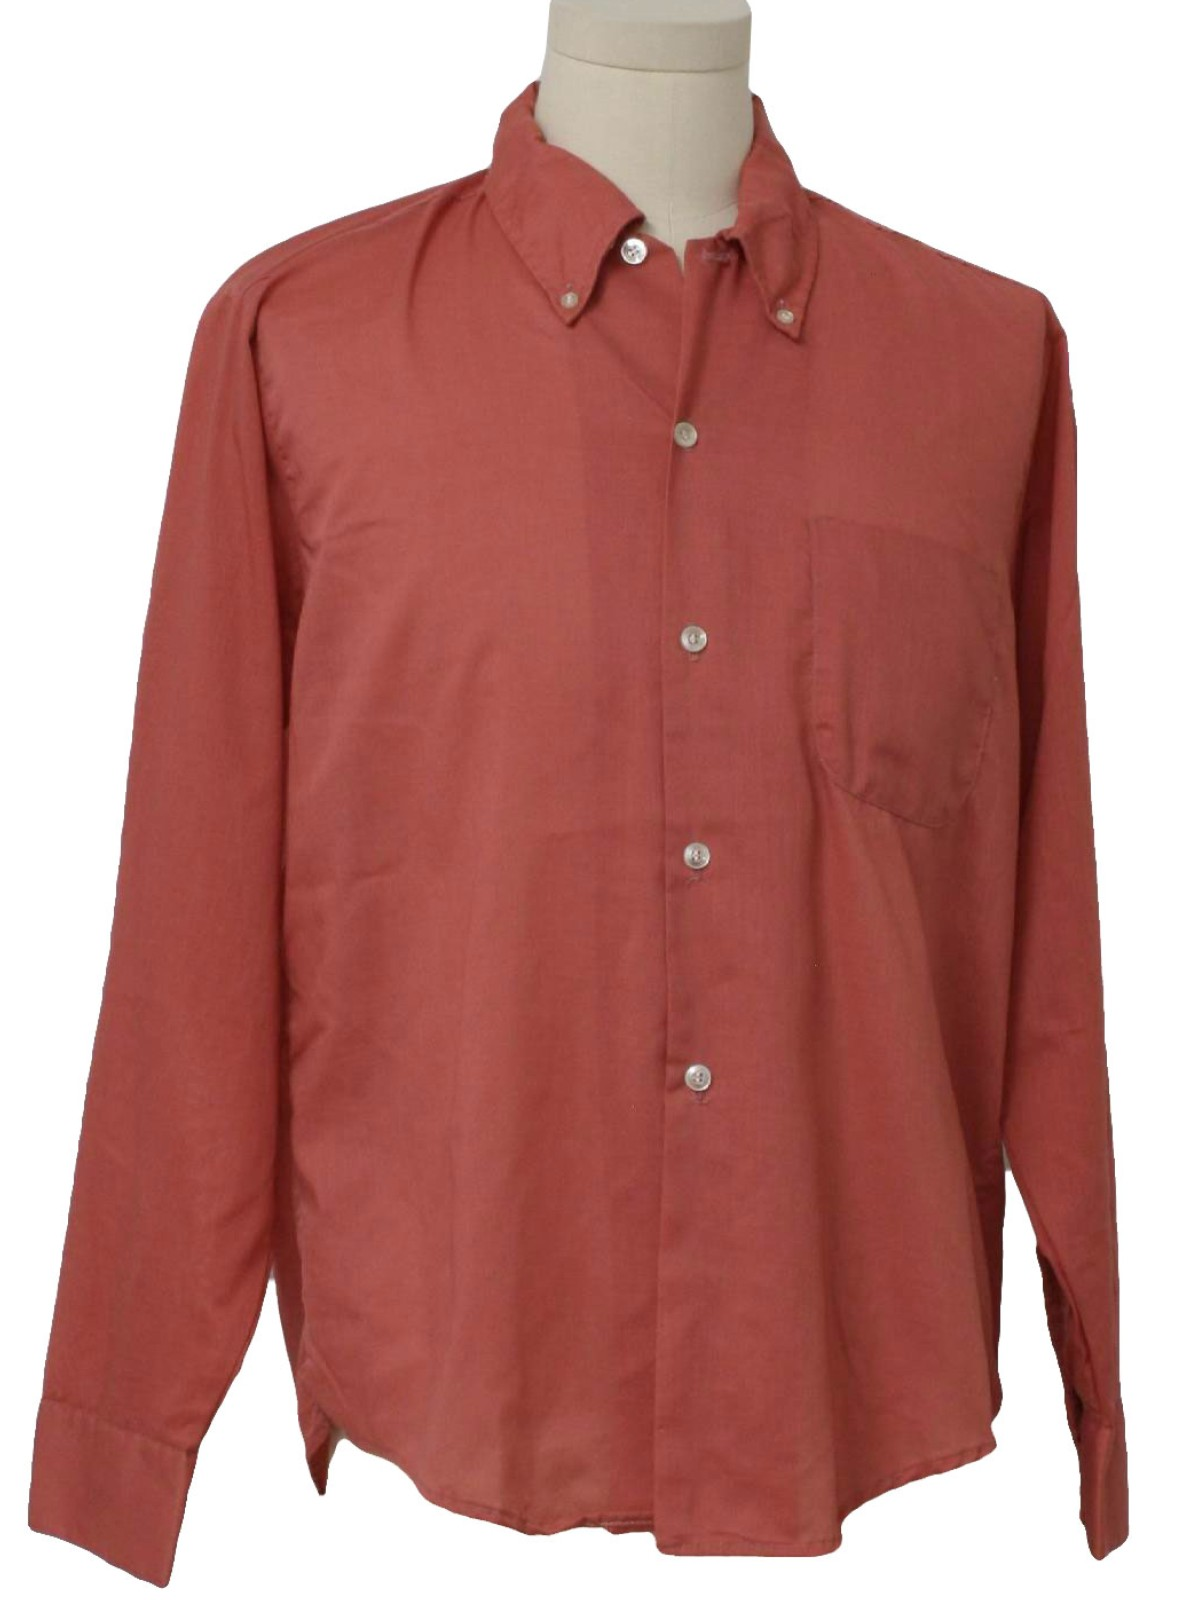 Retro Seventies Shirt Early 70s Care Label Mens Salmon Pink